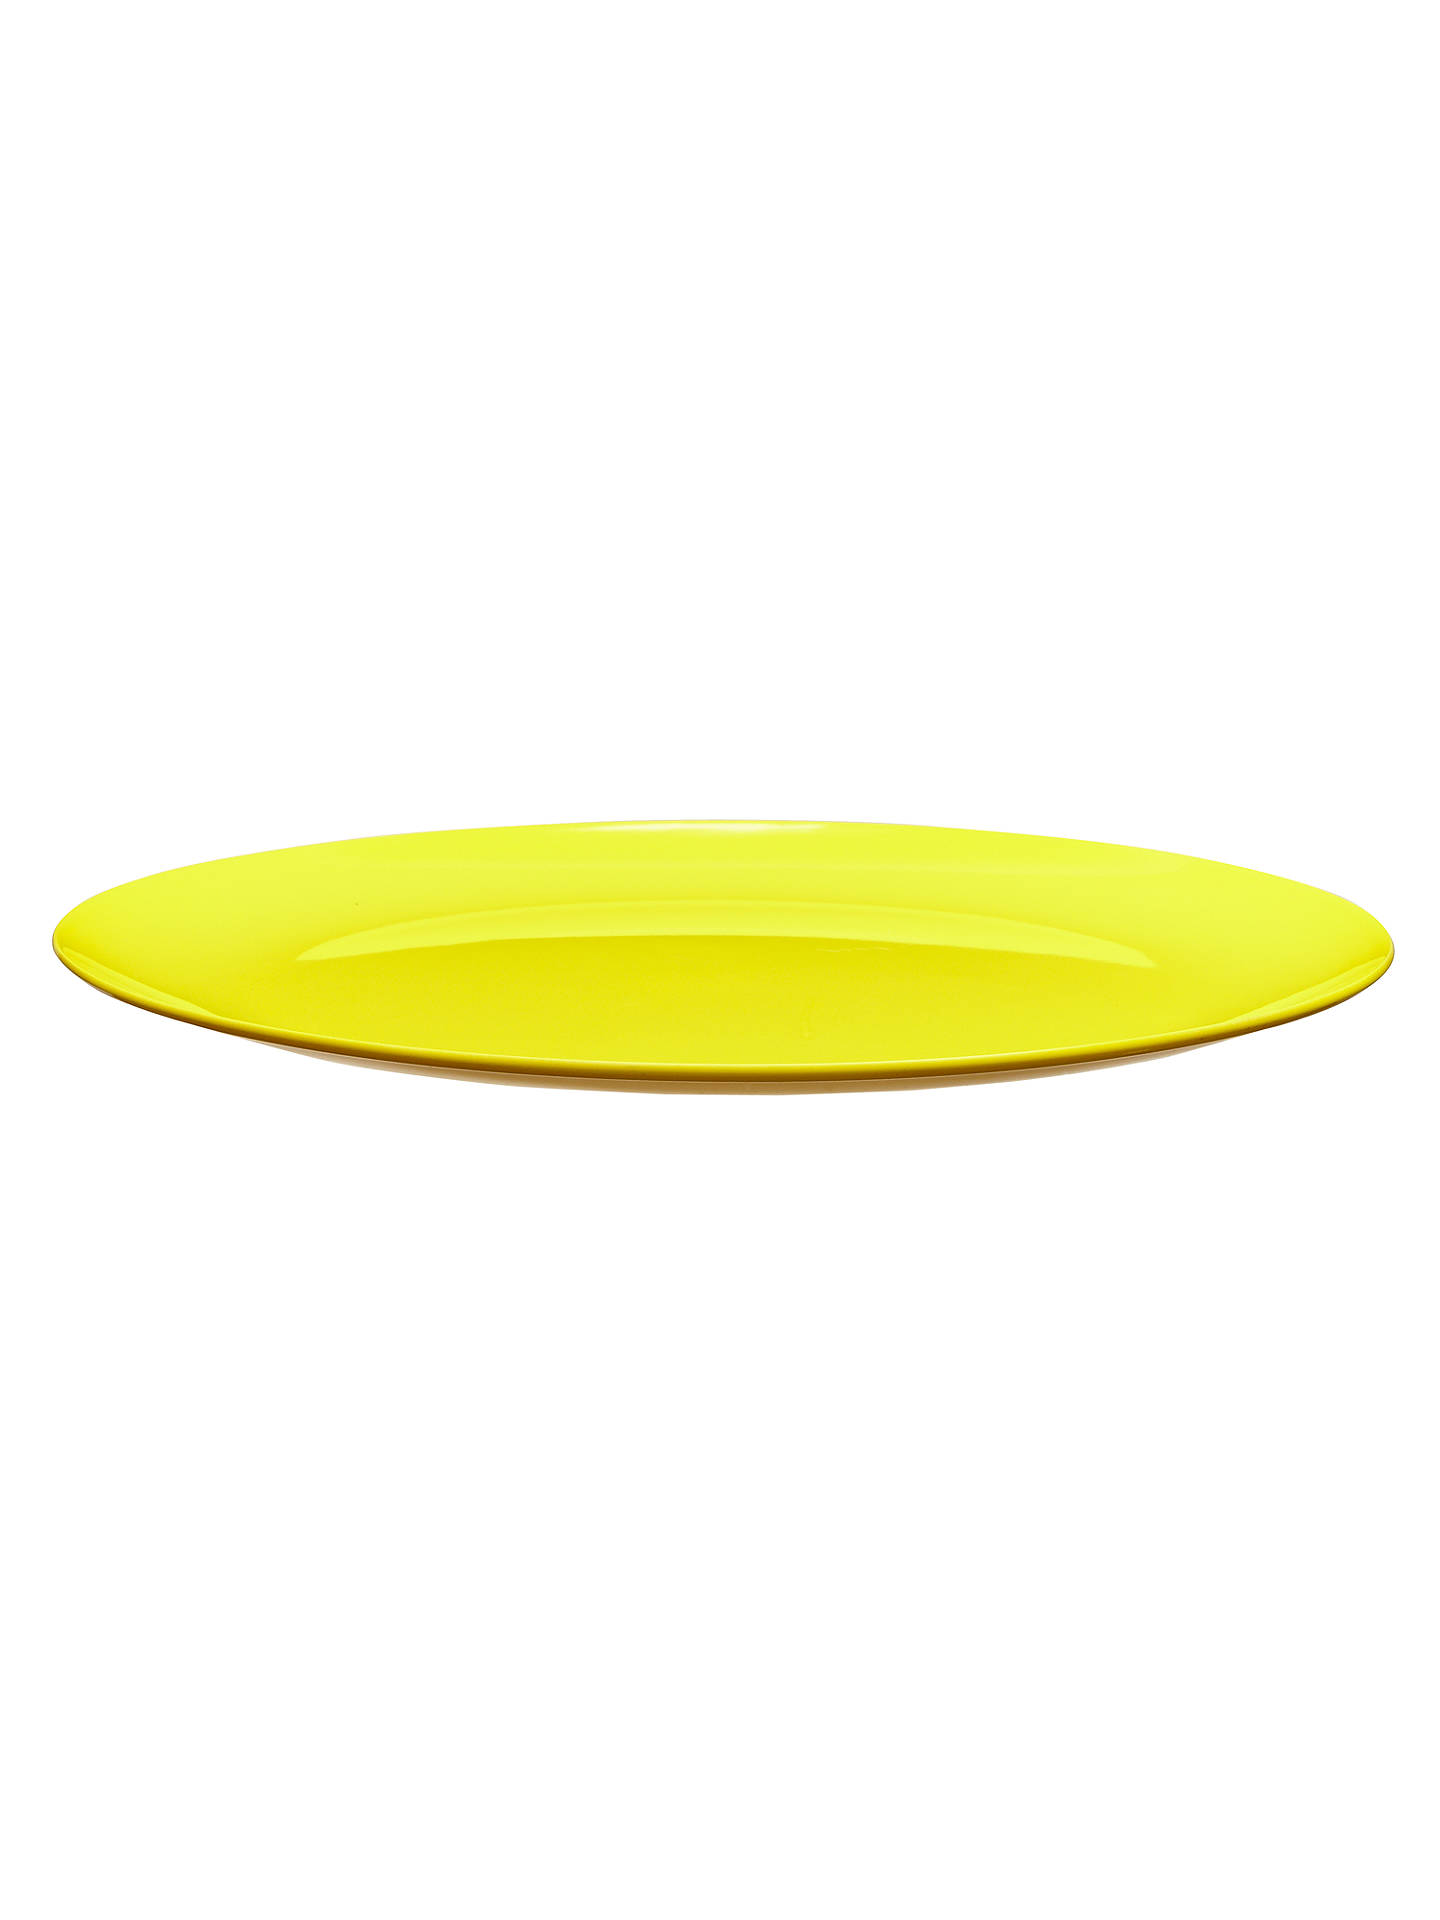 BuyHouse by John Lewis Dinner Plate, Yellow Online at johnlewis.com